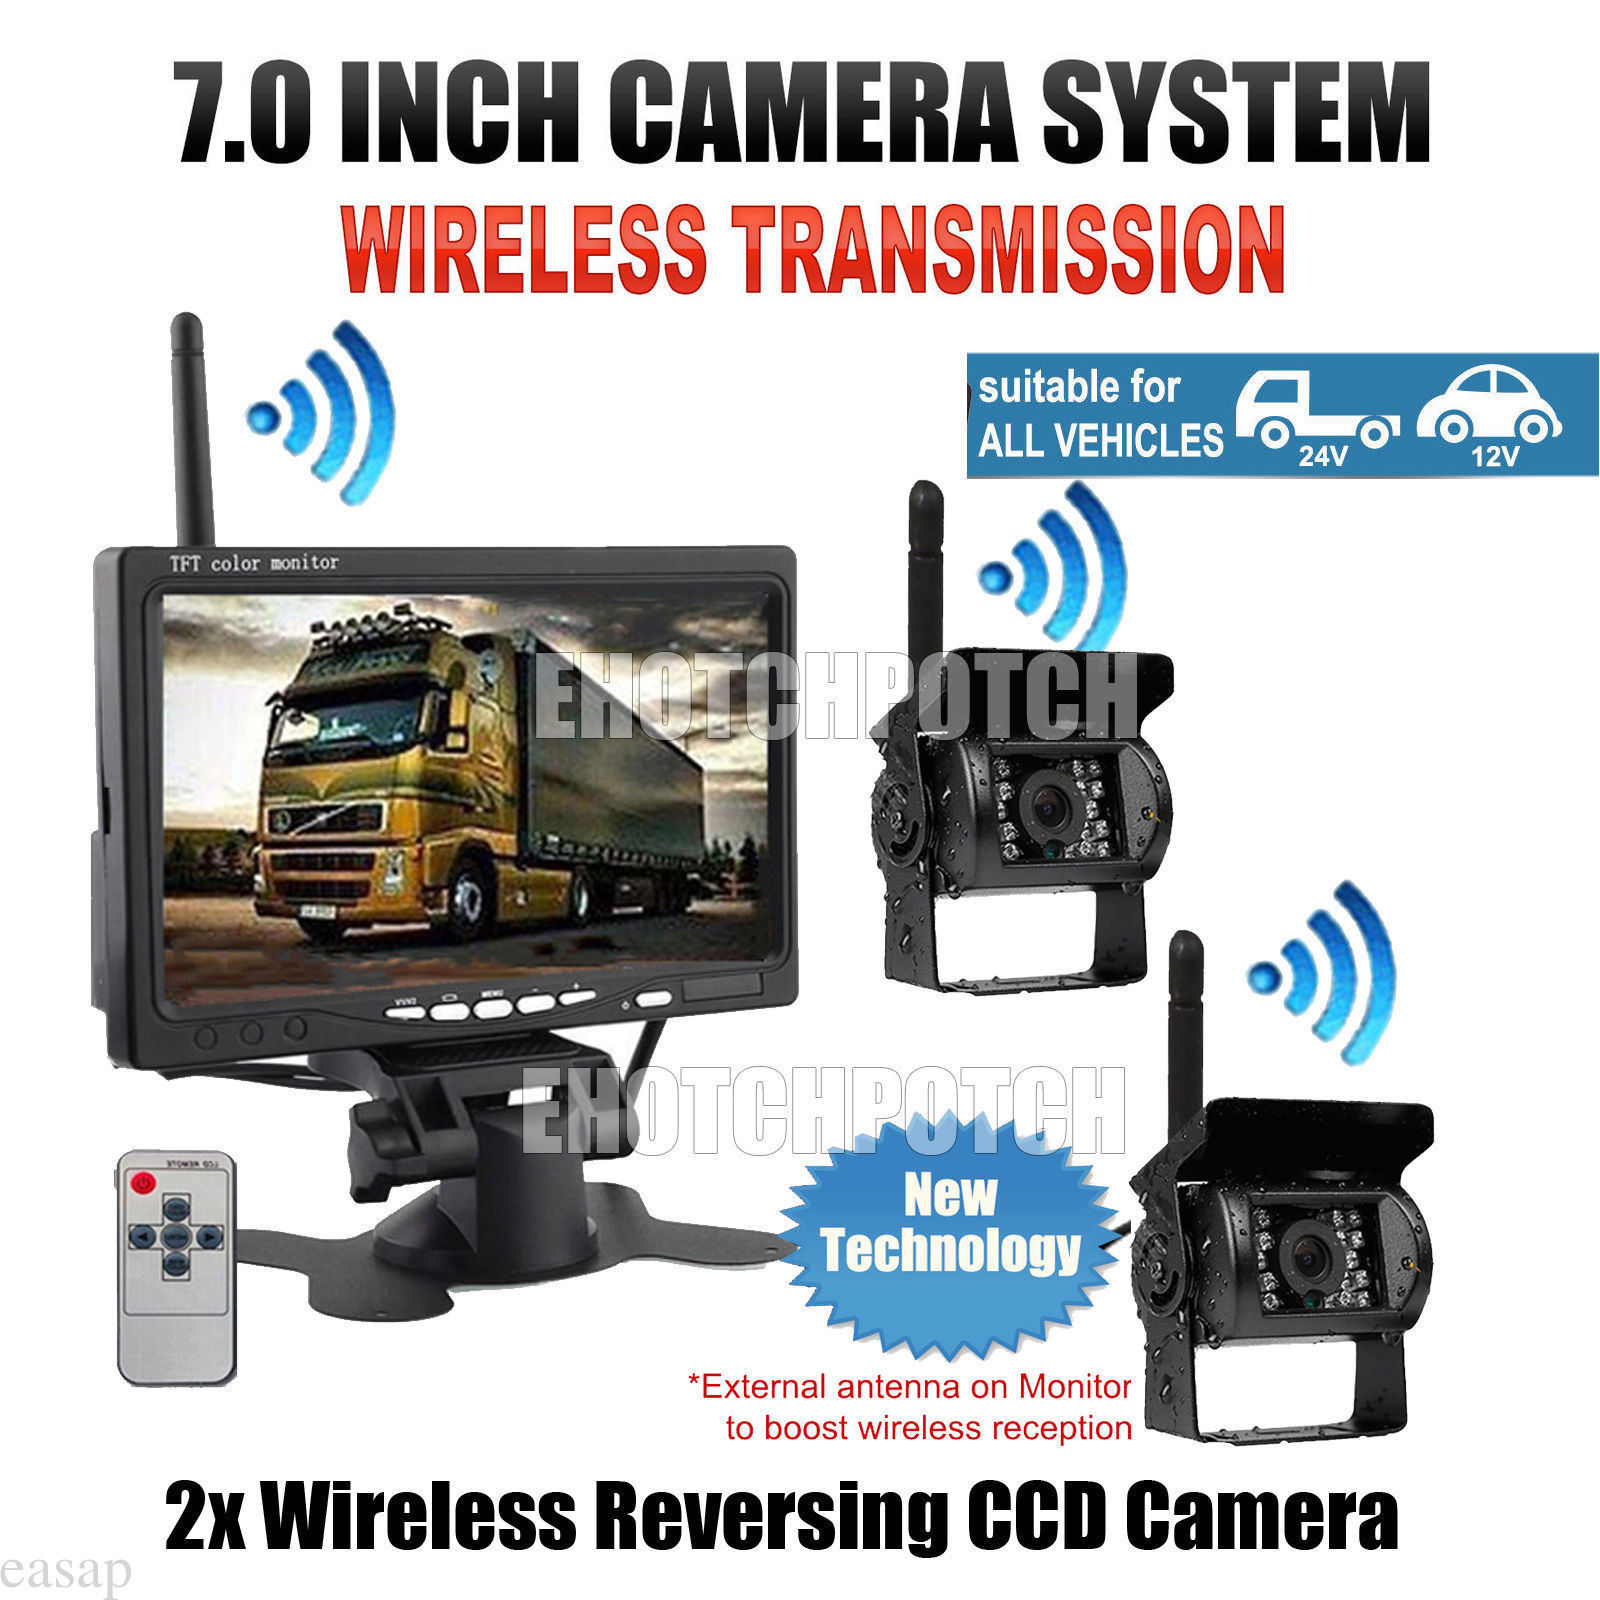 Wireless Vehicle Backup Cameras Parking Assistance System with 2 Pcs Night Vision Rear View Camera and 7 Monitor for RV Truck wireless dual backup cameras parking assistance night vision waterproof rear view camera 7 monitor for rv truck trailer bus page 6